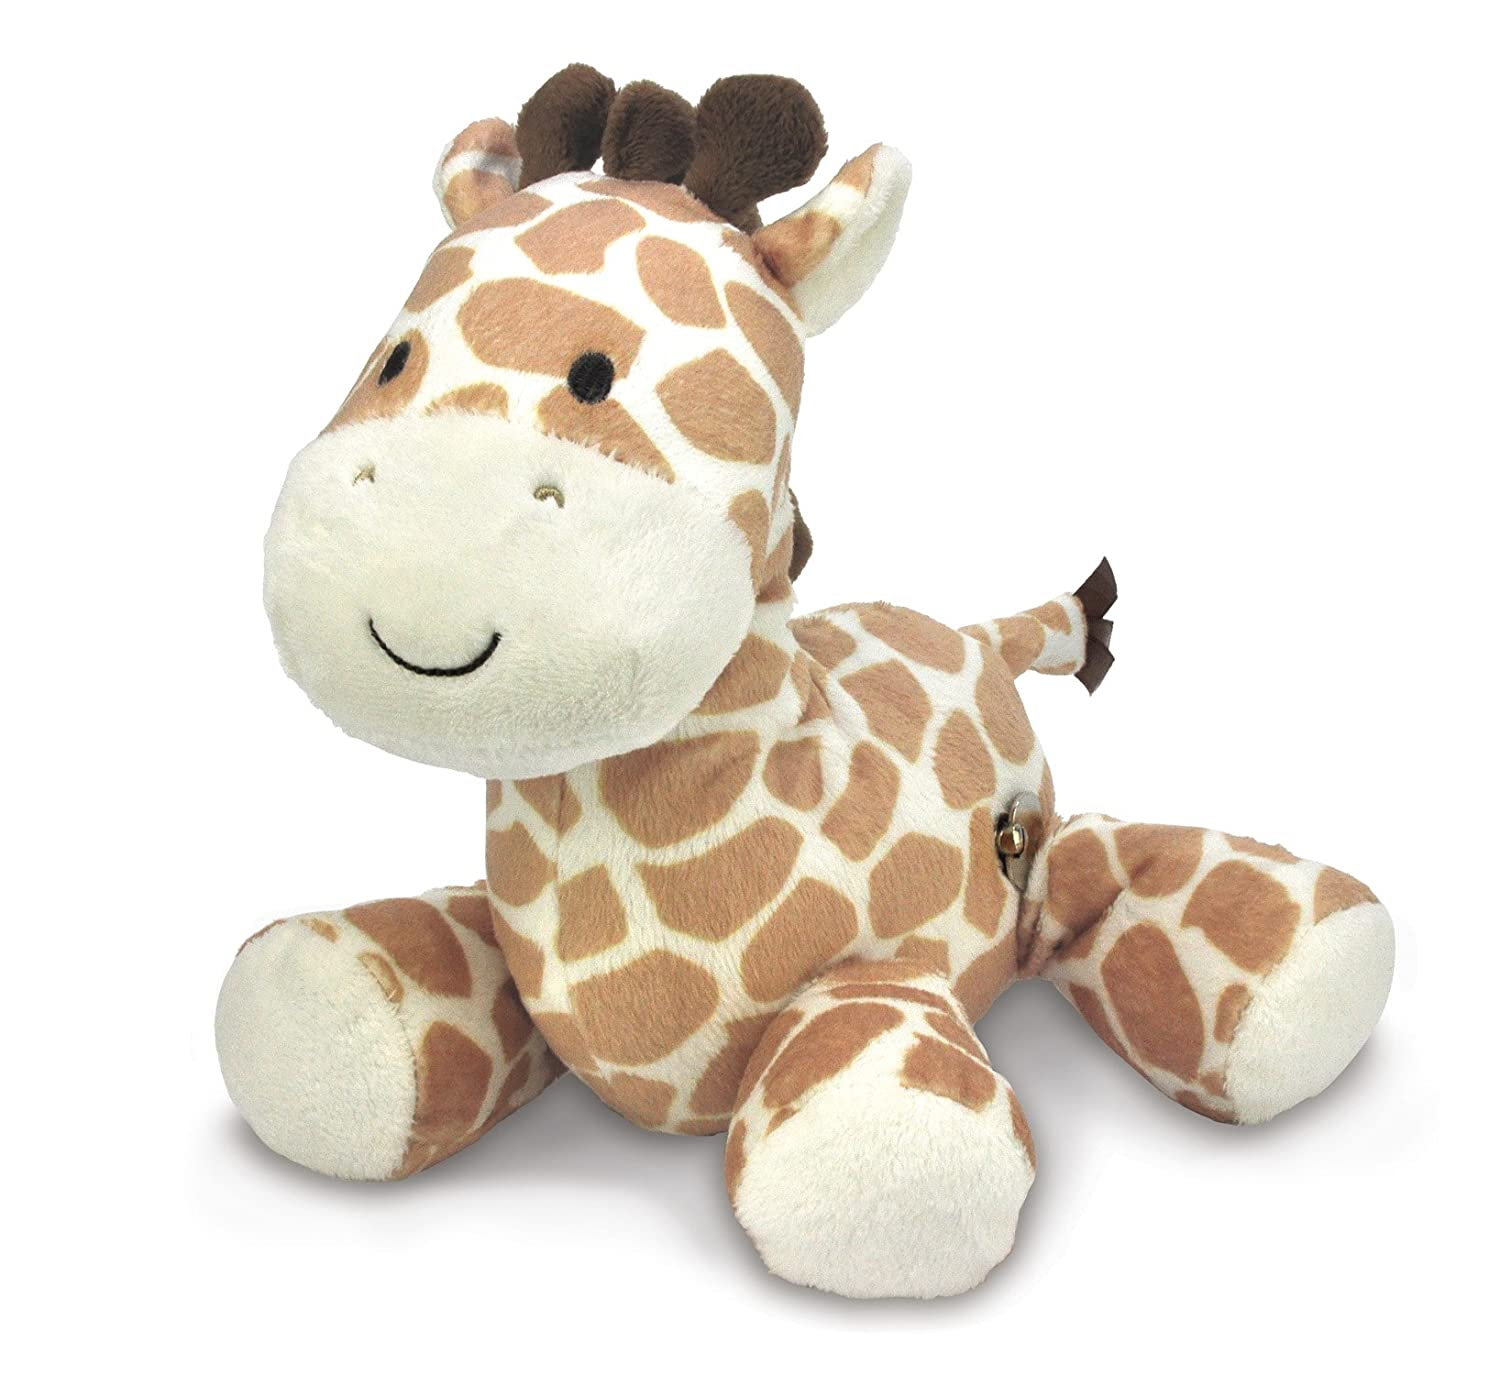 Kids Preferred Giraffe Waggy Musical Plush Toy Figure